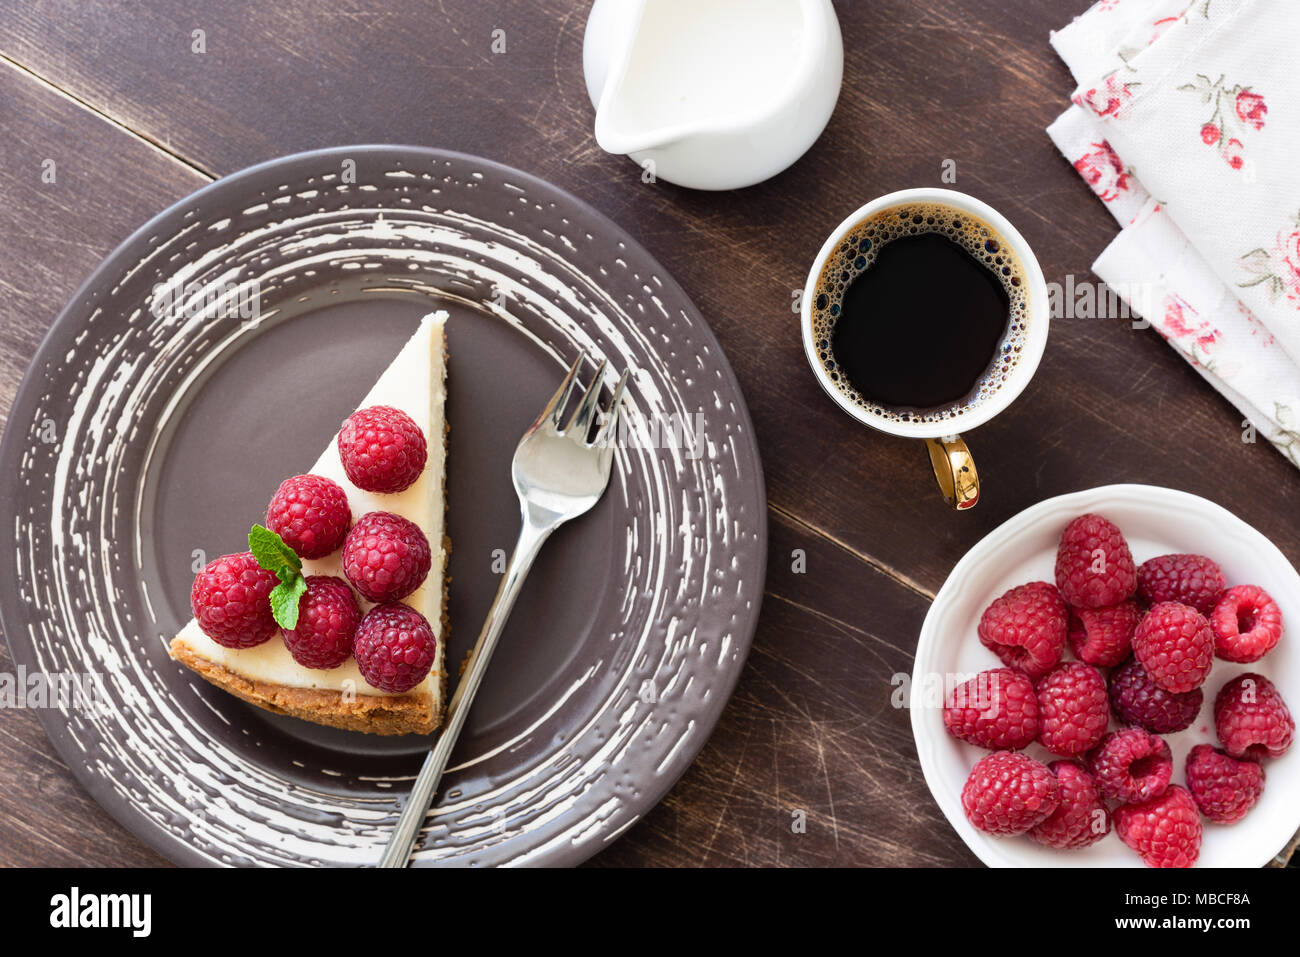 Slice of cheesecake with raspberries and cup of coffee on wood table. Top view - Stock Image